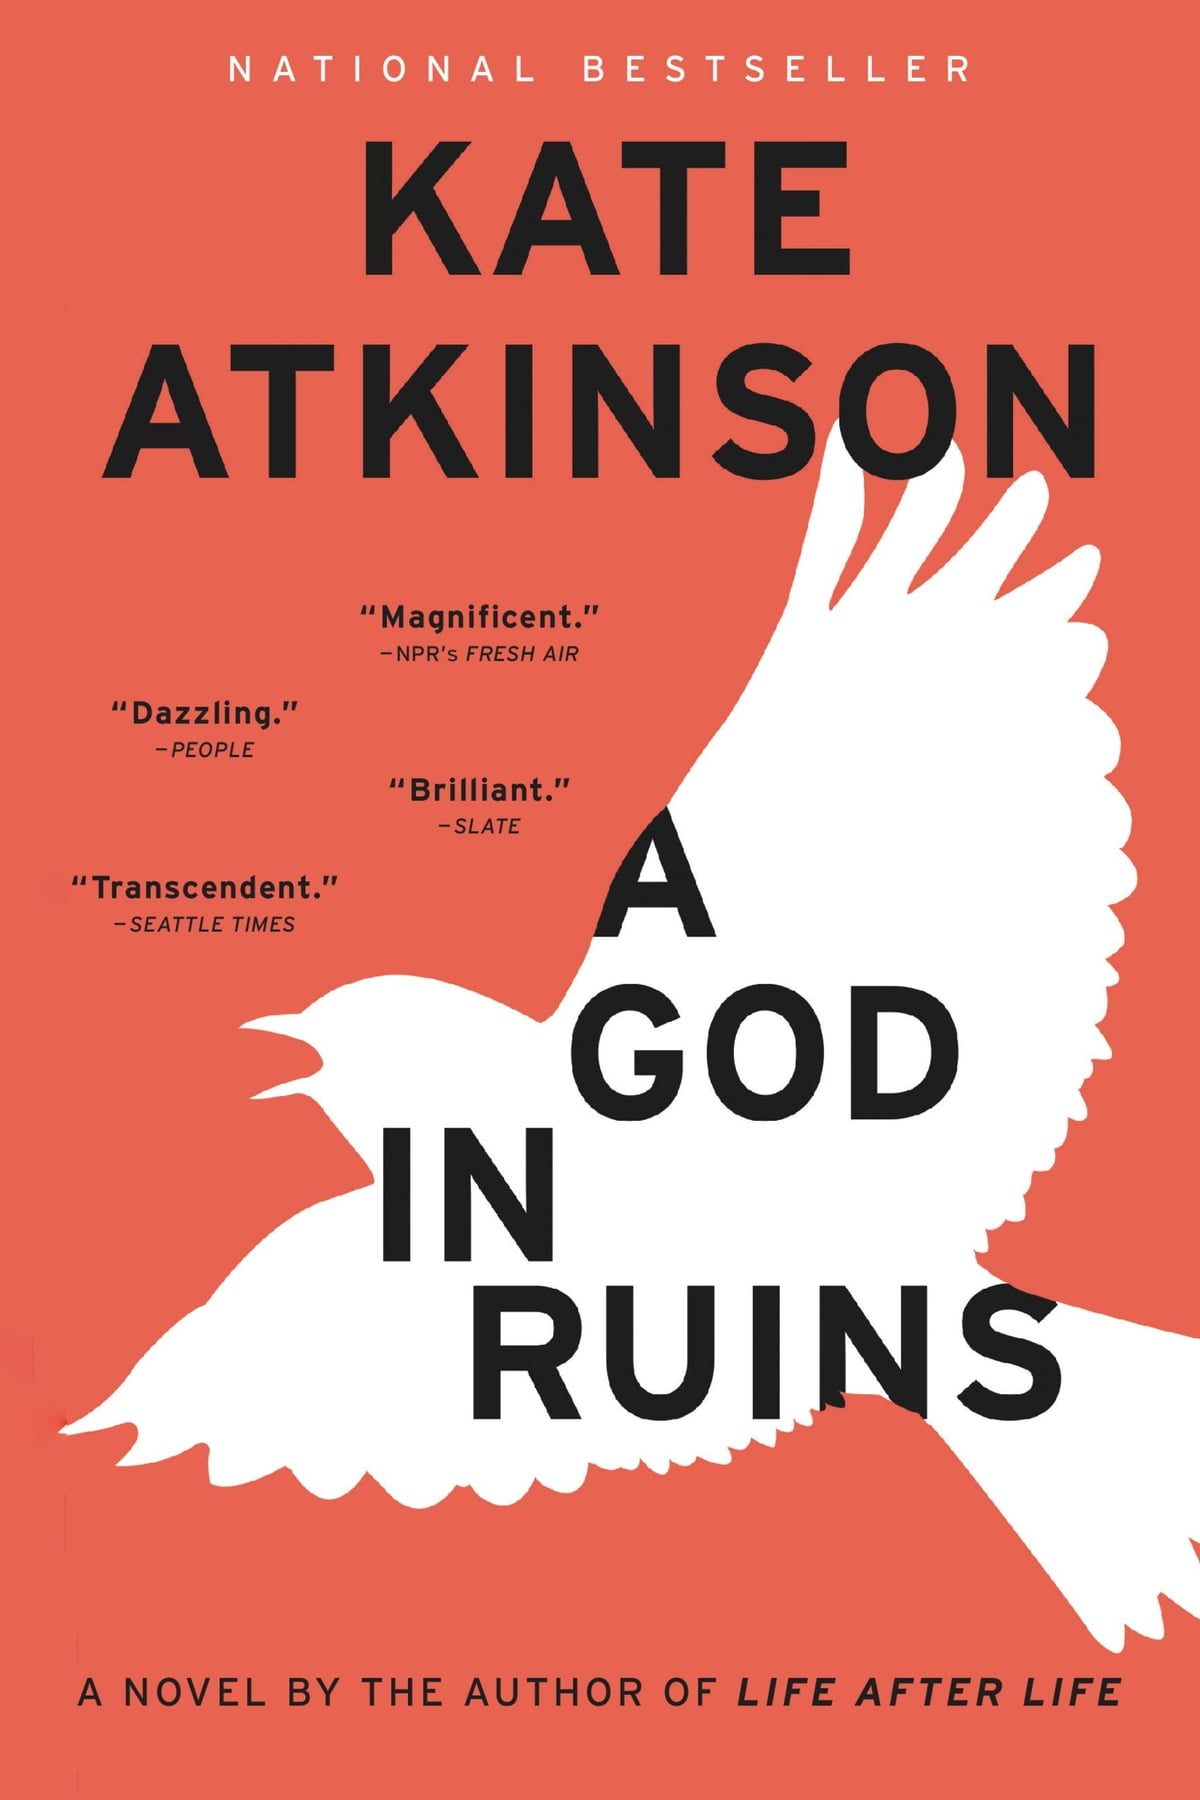 The price of salt carol ebook by patricia highsmith a god in ruins a novel ebook by kate atkinson fandeluxe PDF